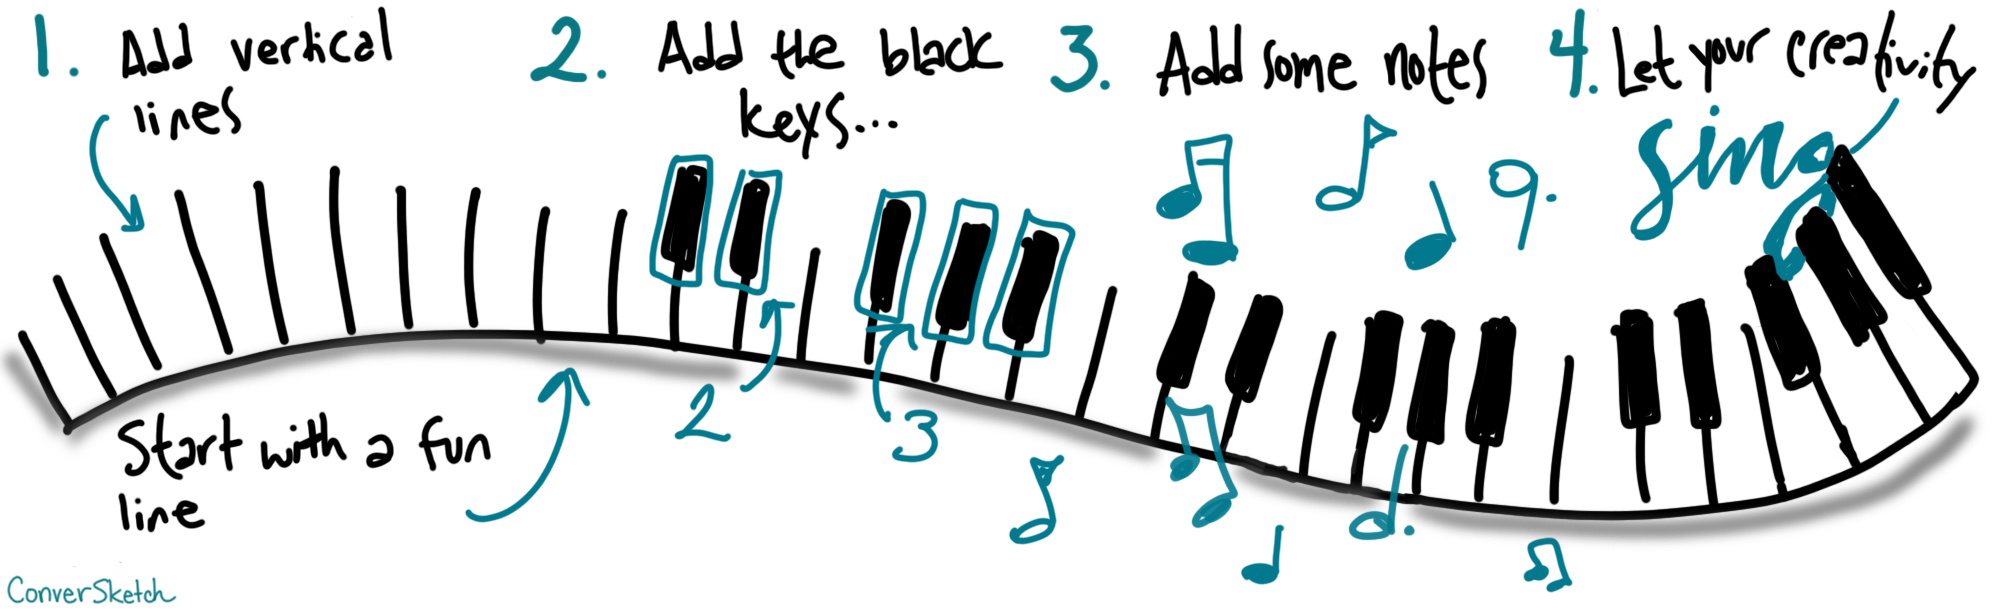 88-keys-to-creativity-from-graphic-recorder